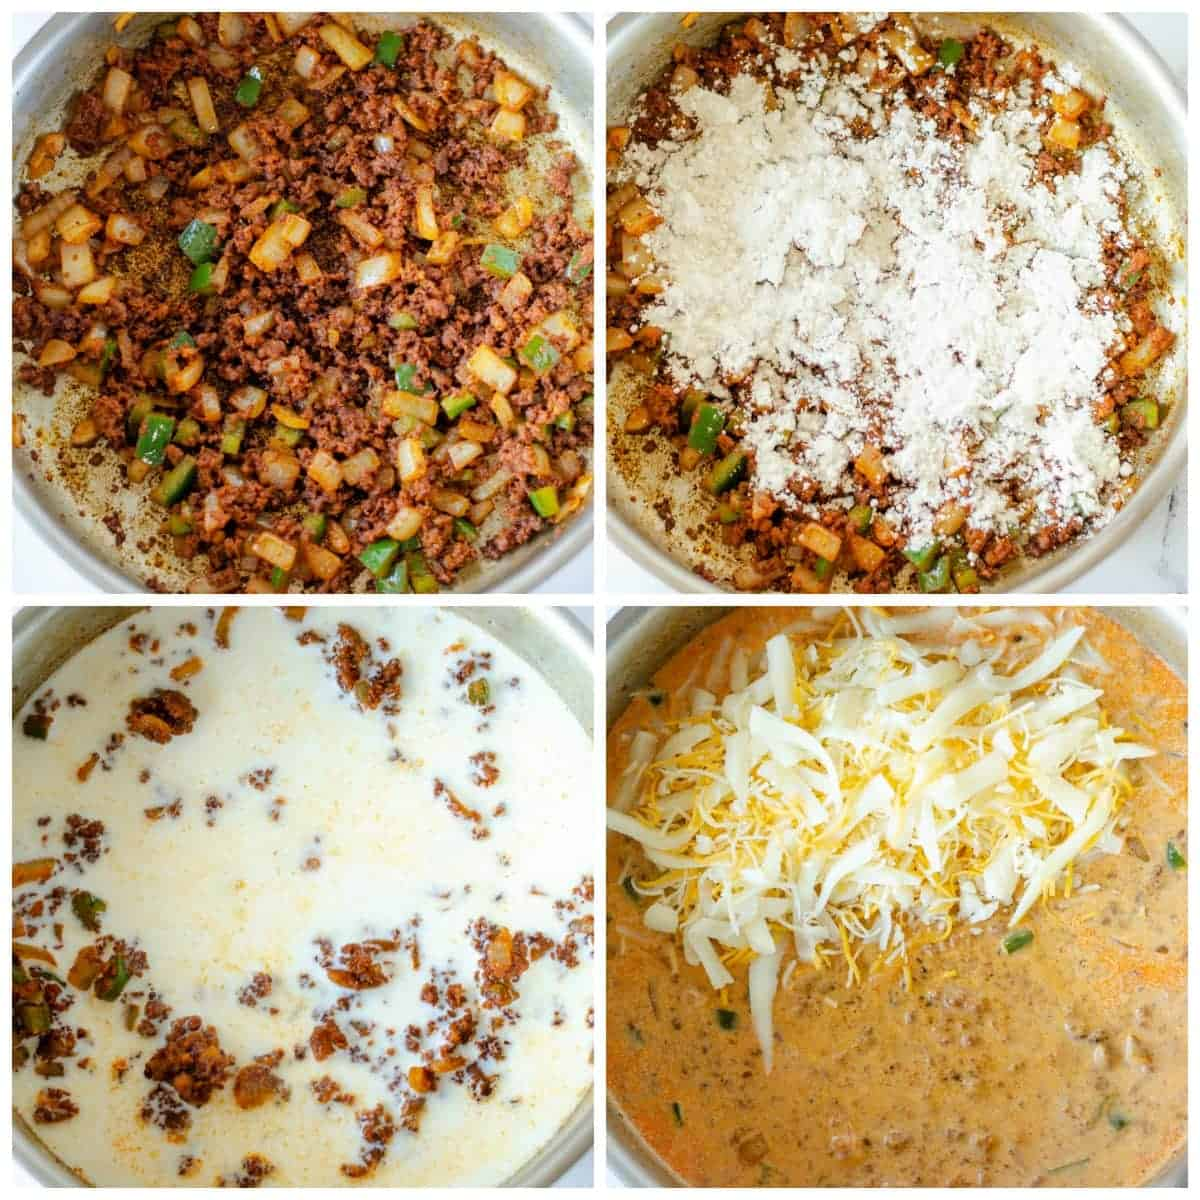 Four process photos. First one, chorizo, onions and jalapenos sauteed in a skillet. Second one, flour sprinkled on top. Third one, milk poured in. Fourth one, cheese melted in.